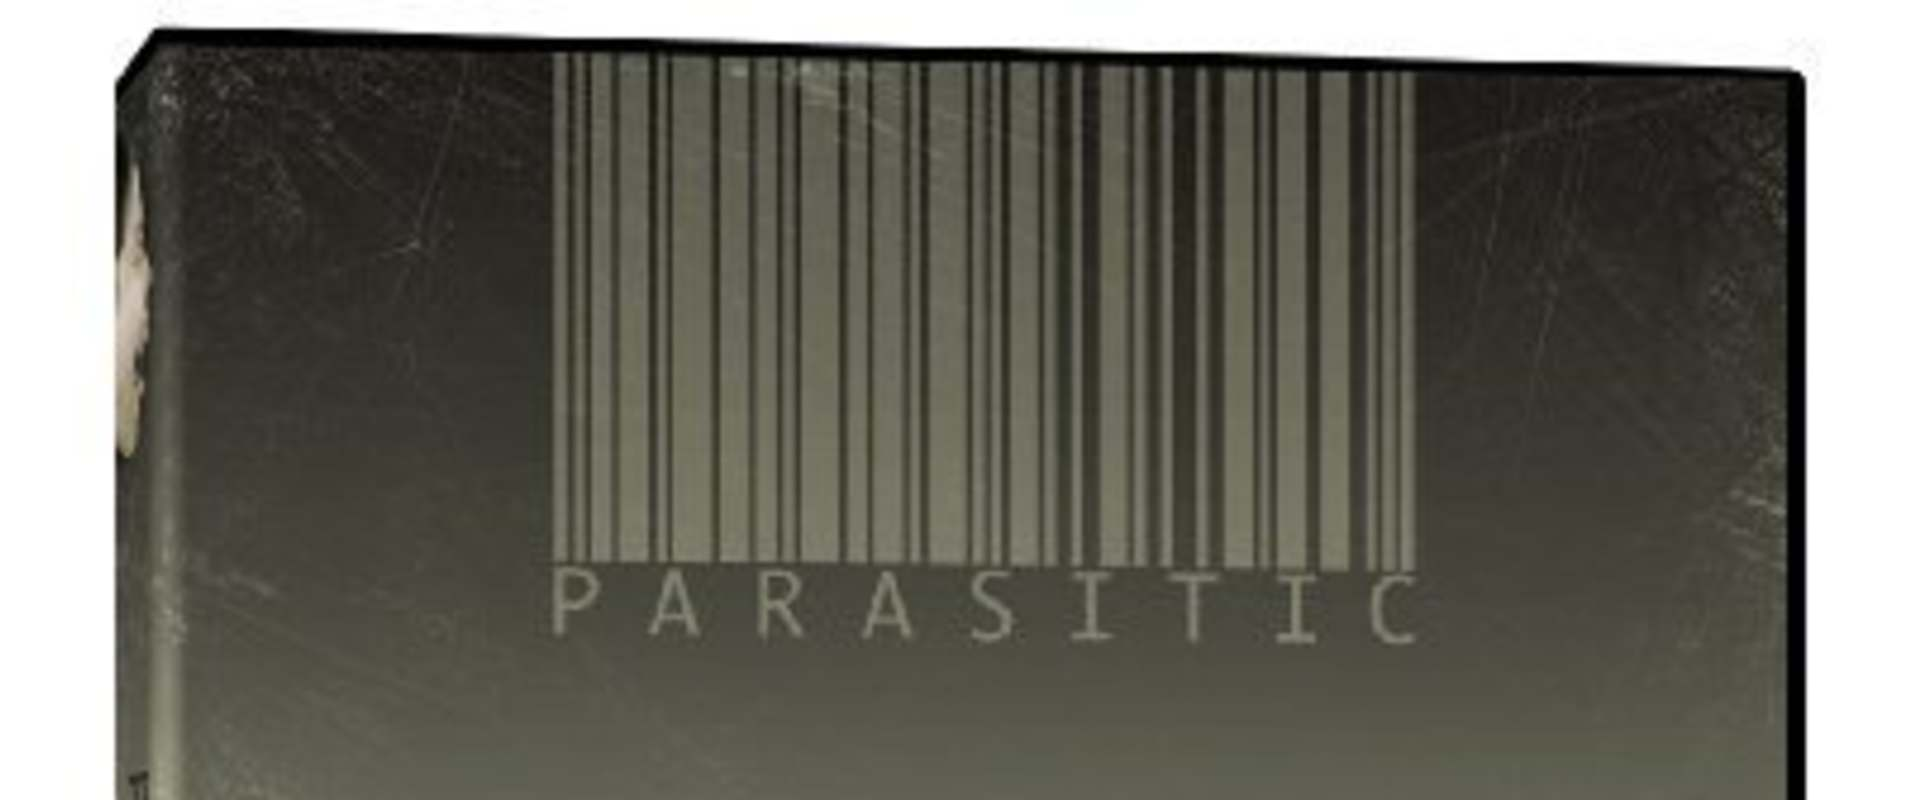 Parasitic background 1